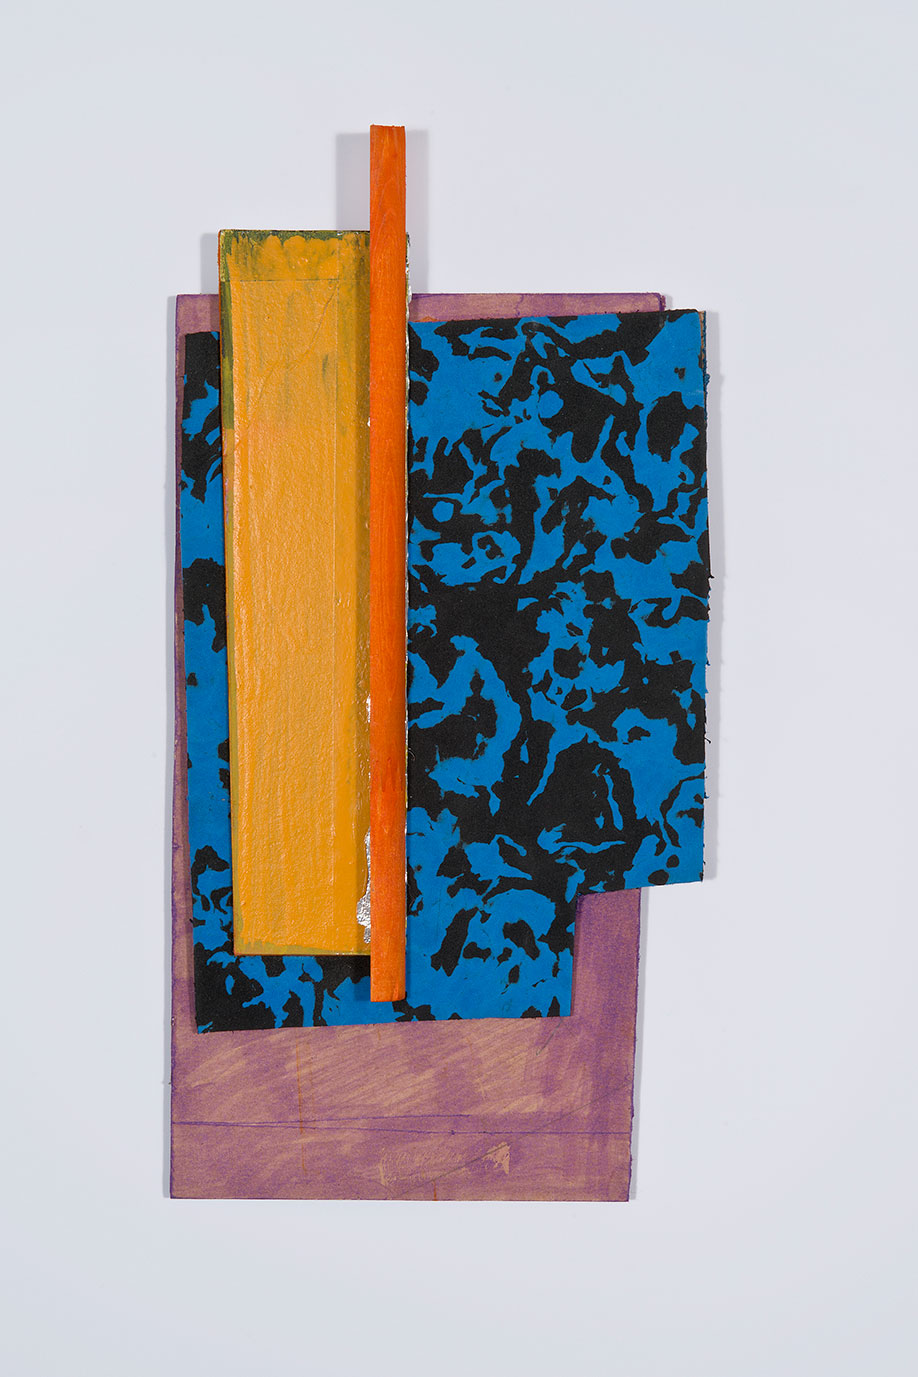 <b>Title:&nbsp;</b>Untitled<br /><b>Year:&nbsp;</b>2013<br /><b>Medium:&nbsp;</b>Ink, aluminium tape, enamel, foam, wood, and hardboard<br /><b>Size:&nbsp;</b>35 x 18 cm